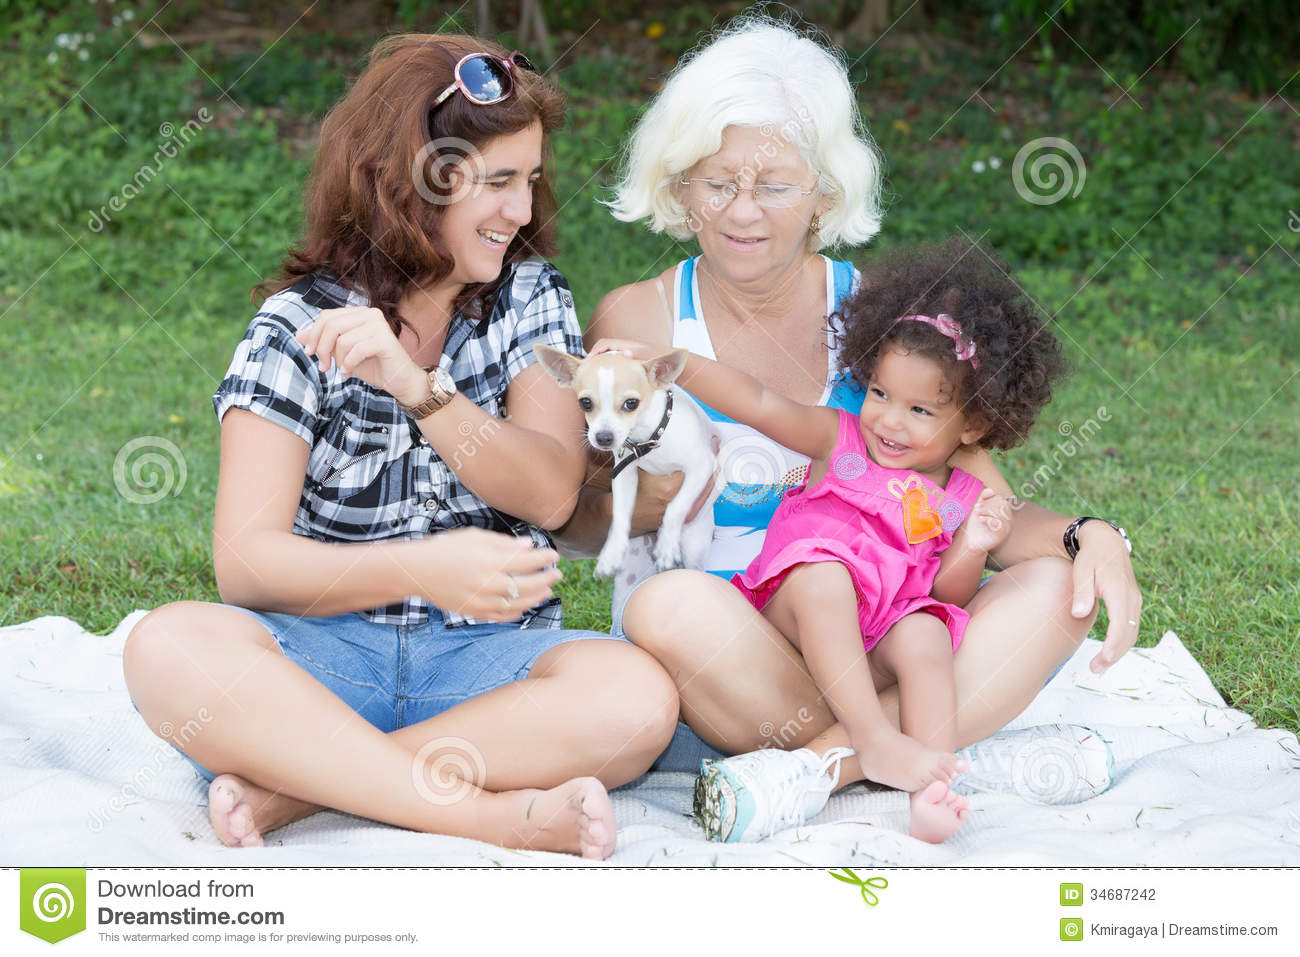 https://thumbs.dreamstime.com/z/latin-grandma-mother-daughter-camping-park-happy-family-including-grandmother-small-dog-34687242.jpg